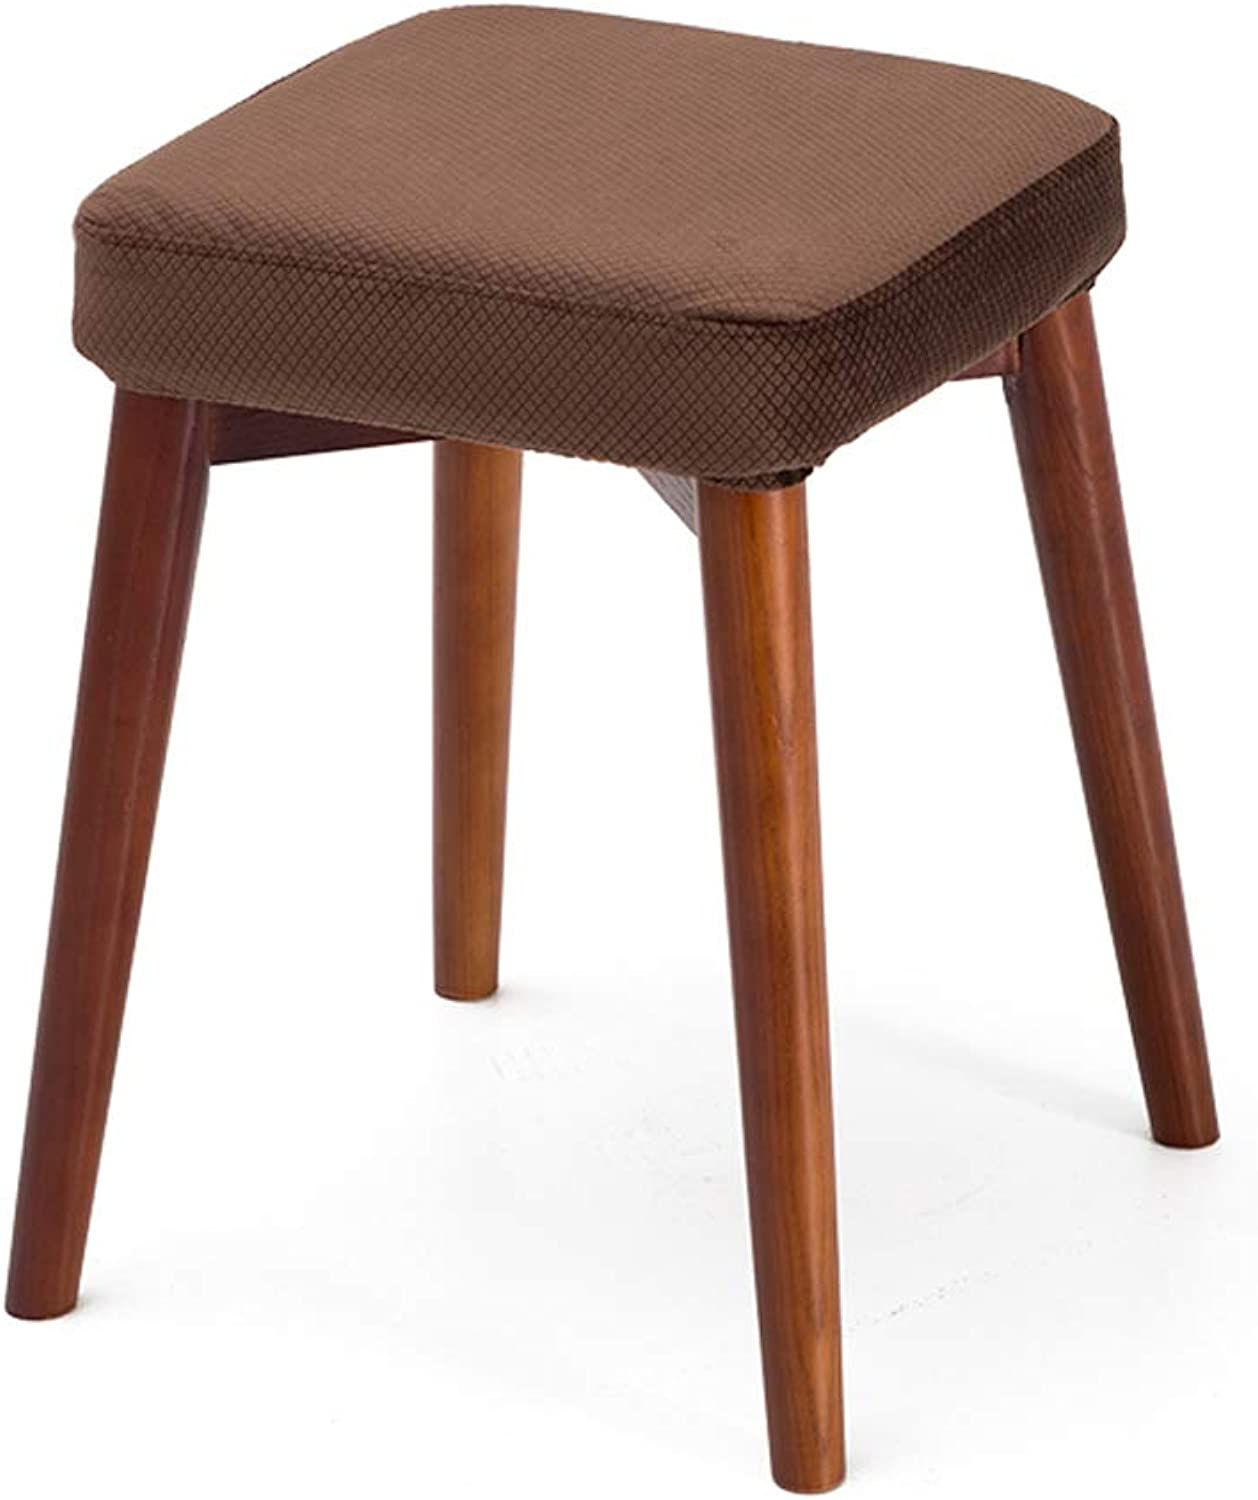 HLQW Solid Wooden Dining Stool Square Stool Can Be Stacked Stool Creative Fashion Dressing Stool Cloth Dining Table Stool Household Small Bench, Brown Legs 6